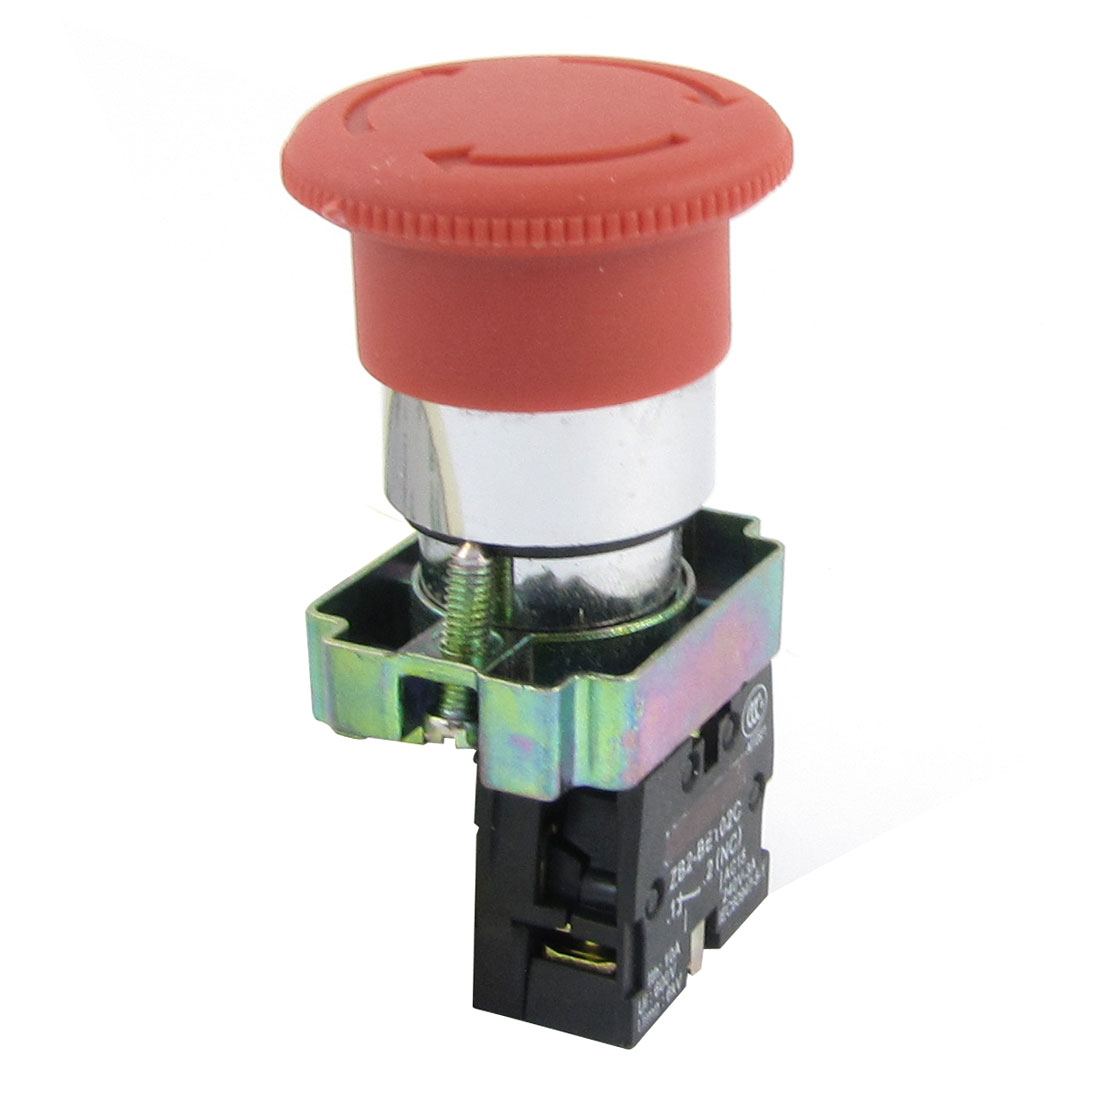 660V 10A 21mm Threaded Latching Red Mushroomhead Emergency Push Botton Switch